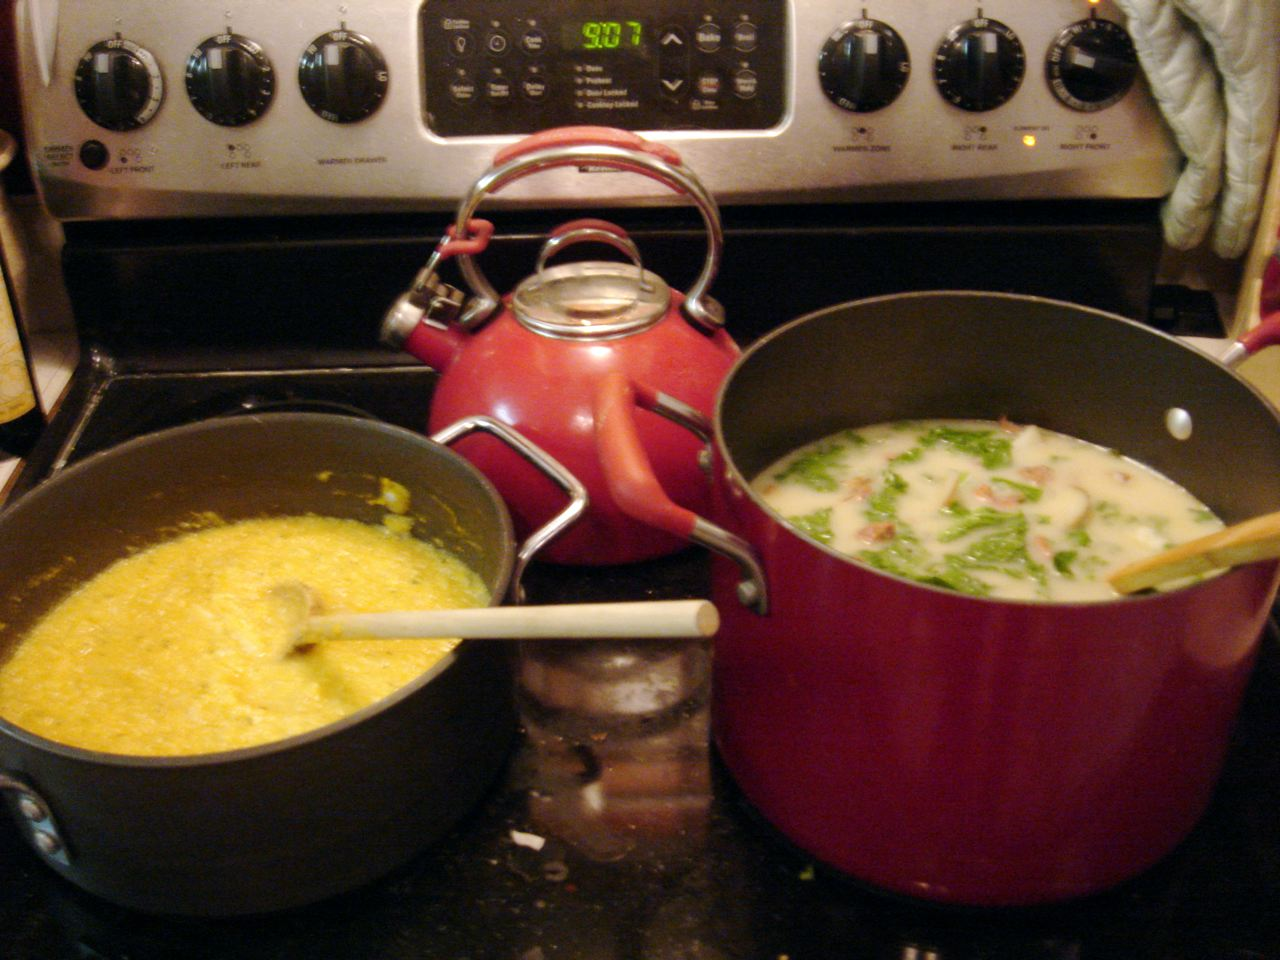 Squash soup on left, zuppa toscana on right. And yes, I was making soup at 9:00 Wednesday night...